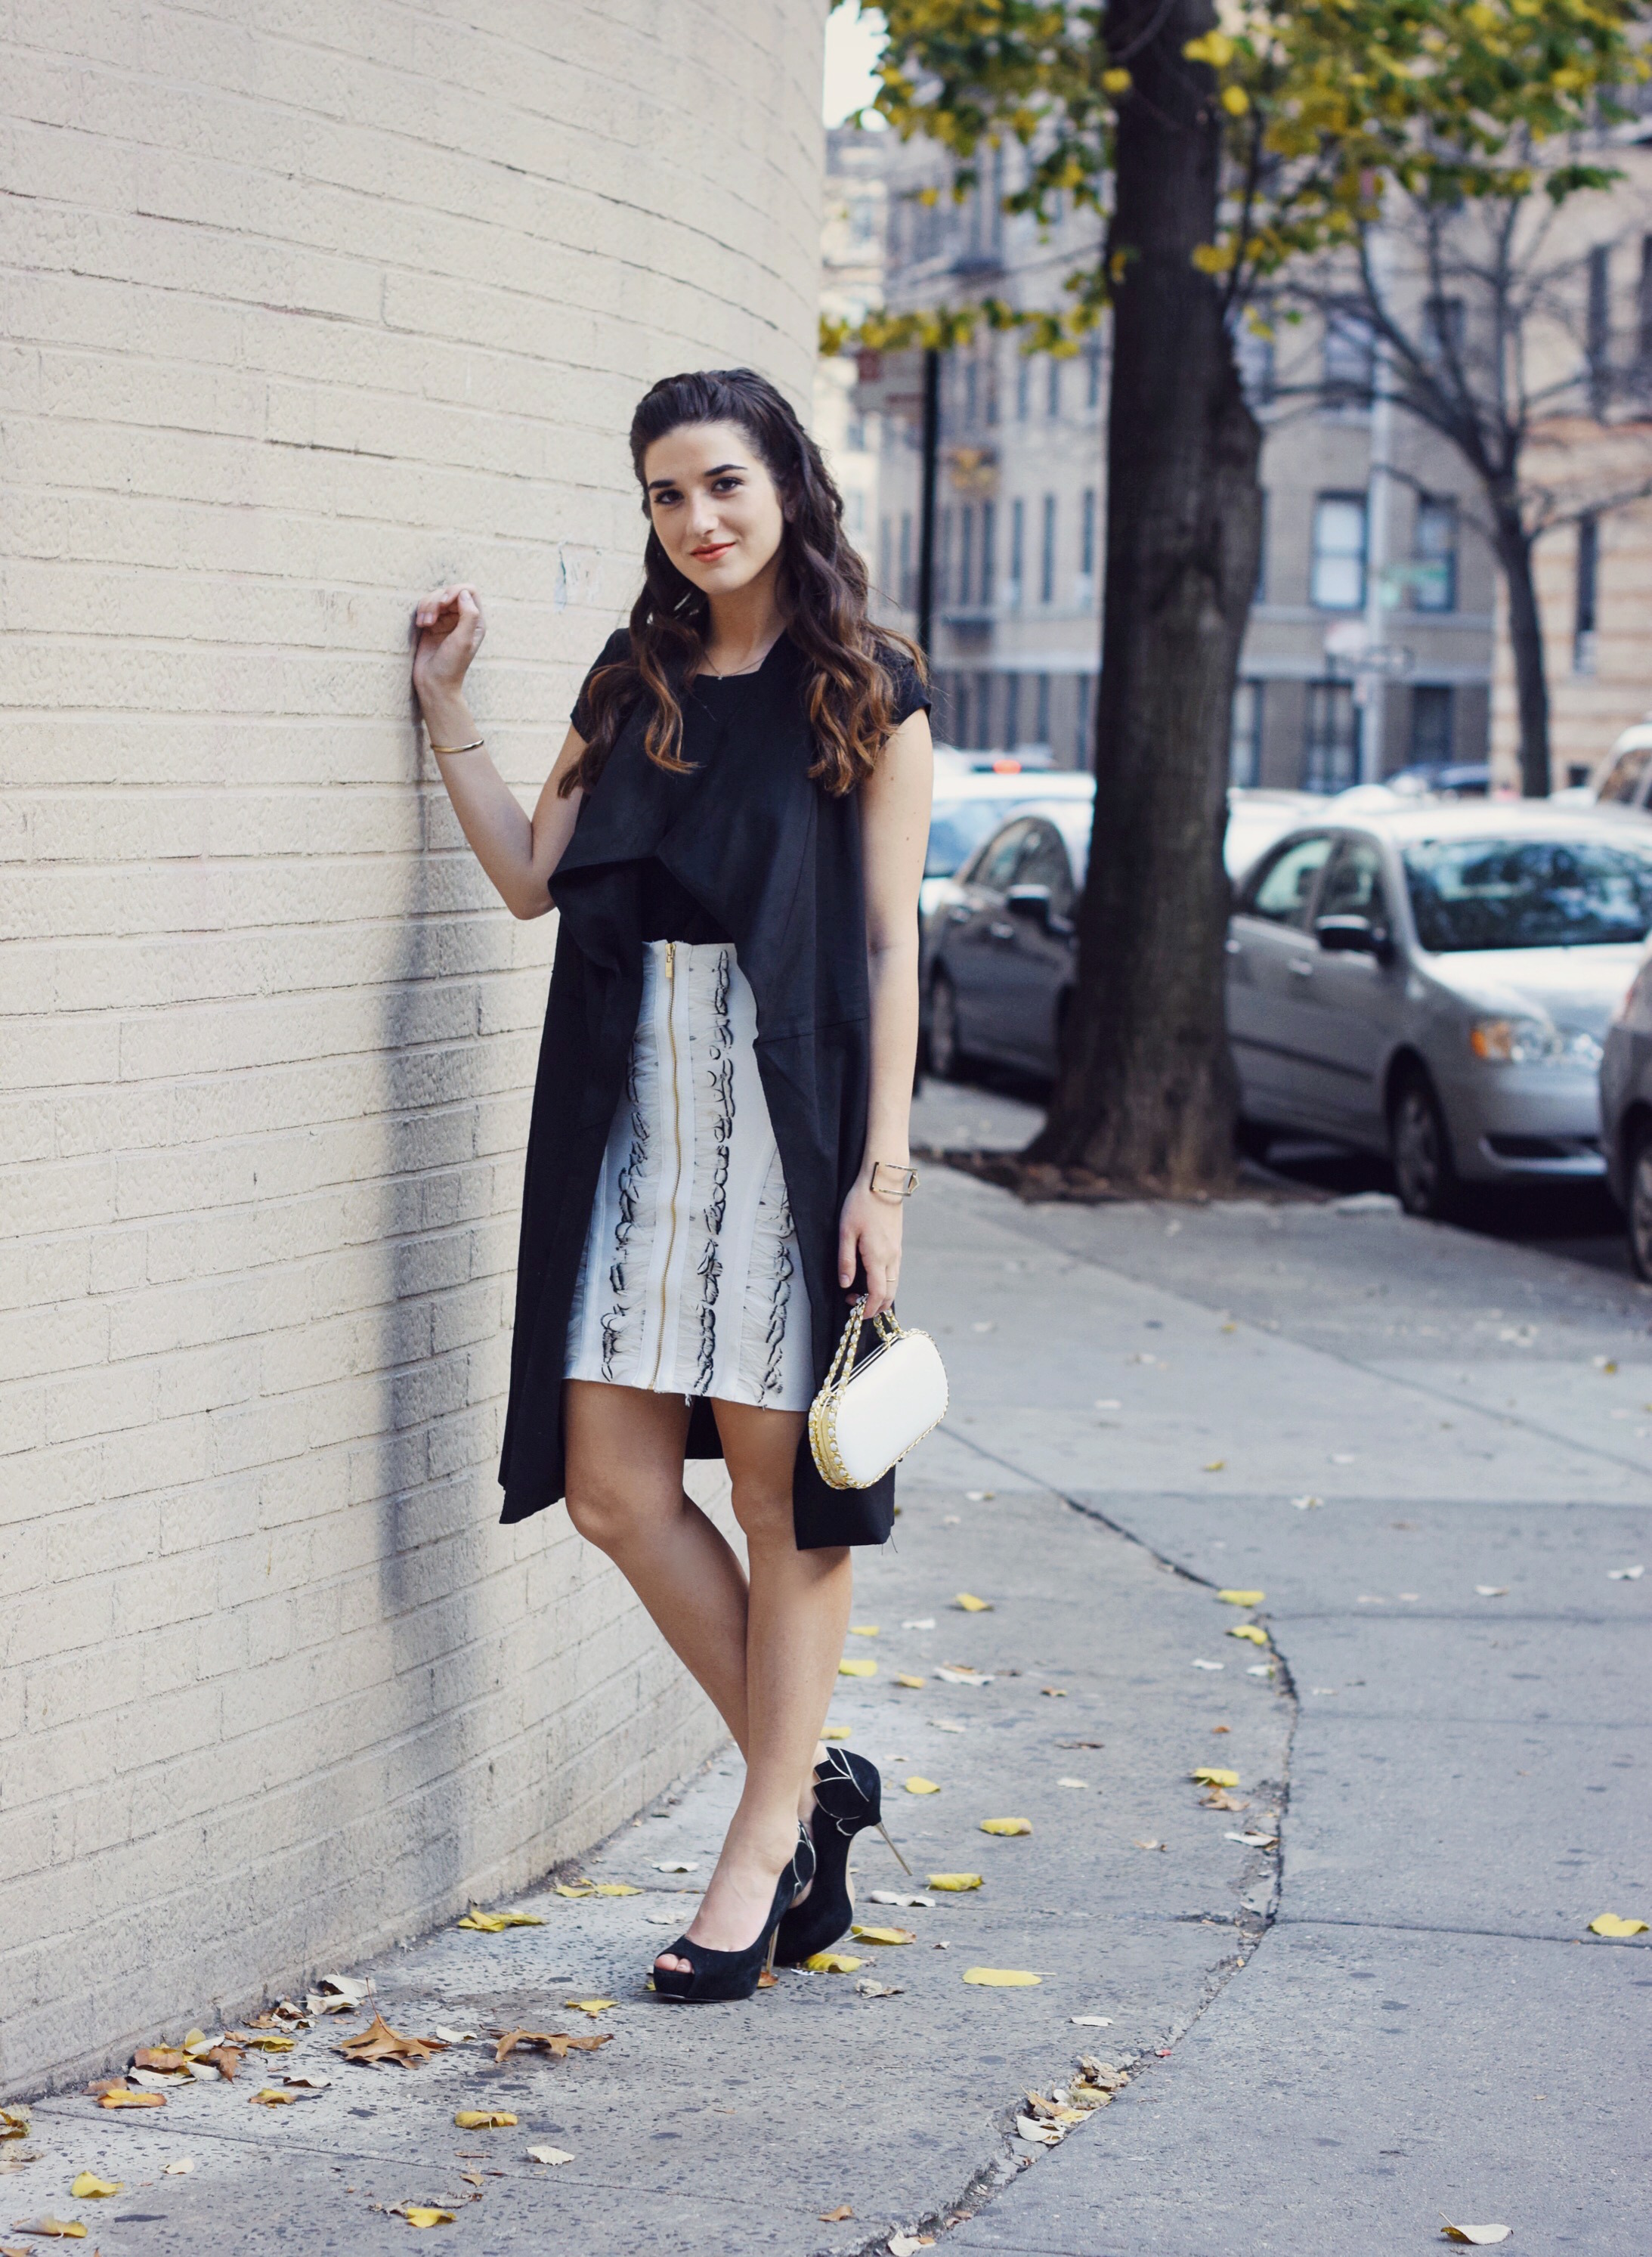 White Feather Skirt Long Black Vest Wow Couture Louboutins & Love Fashion Blog Esther Santer NYC Street Style Blogger Photoshoot Hairstyle Inspo Heels Gold Black Tee Zara Outfit OOTD Beauty Braid Winter Fall Women Girl Model Erin Dana White Minaudiere.JPG